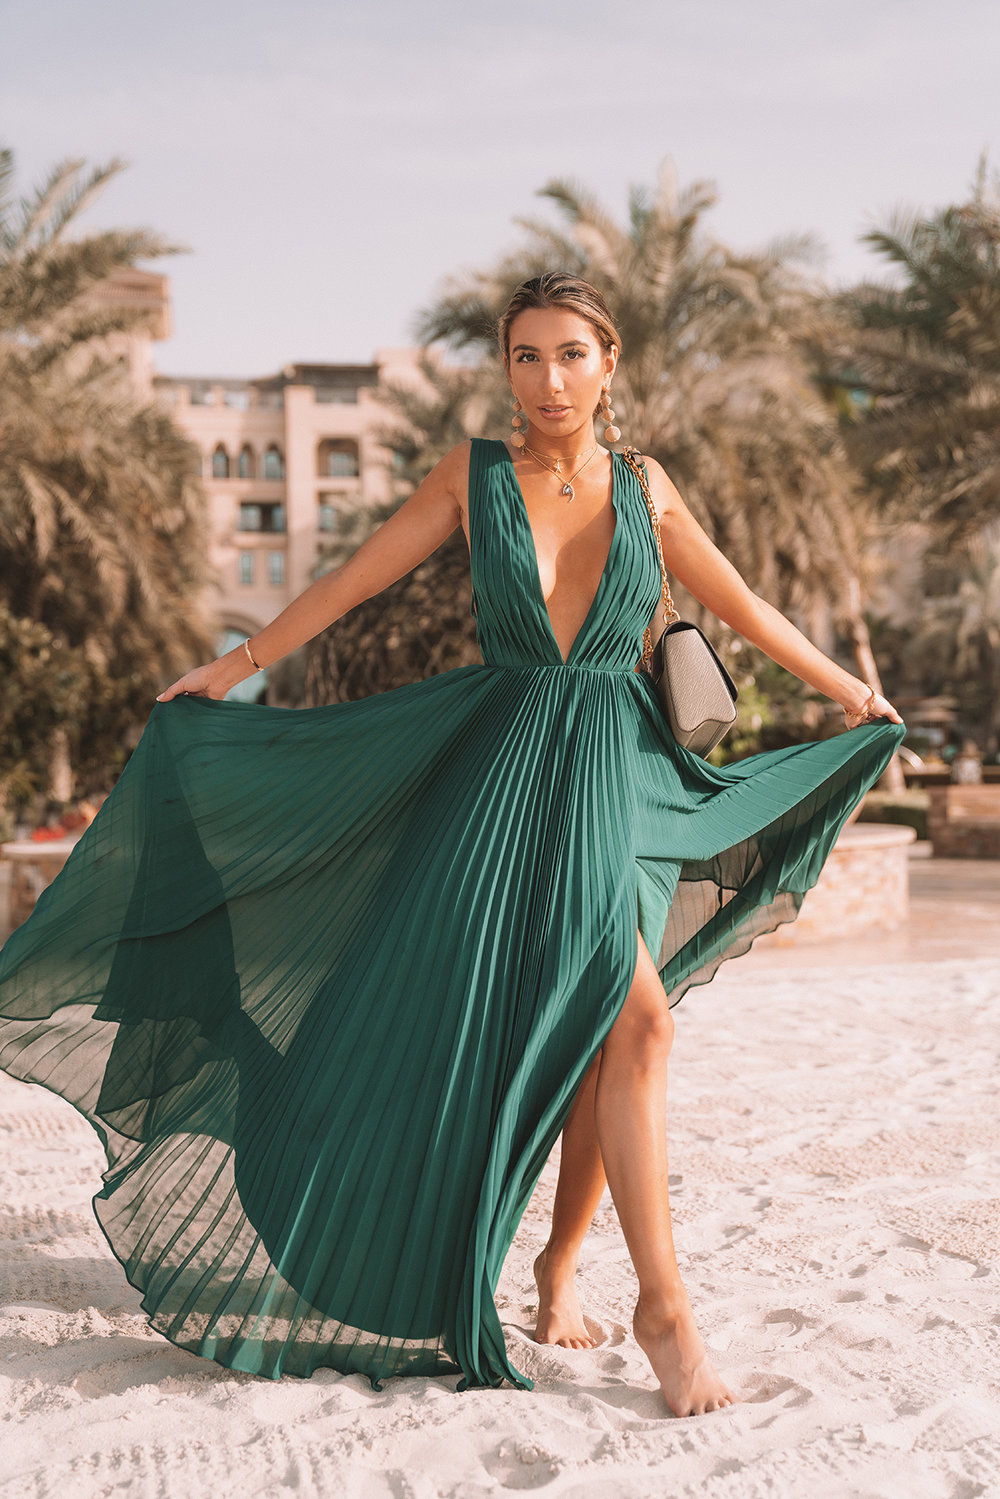 Free People dress in Dubai